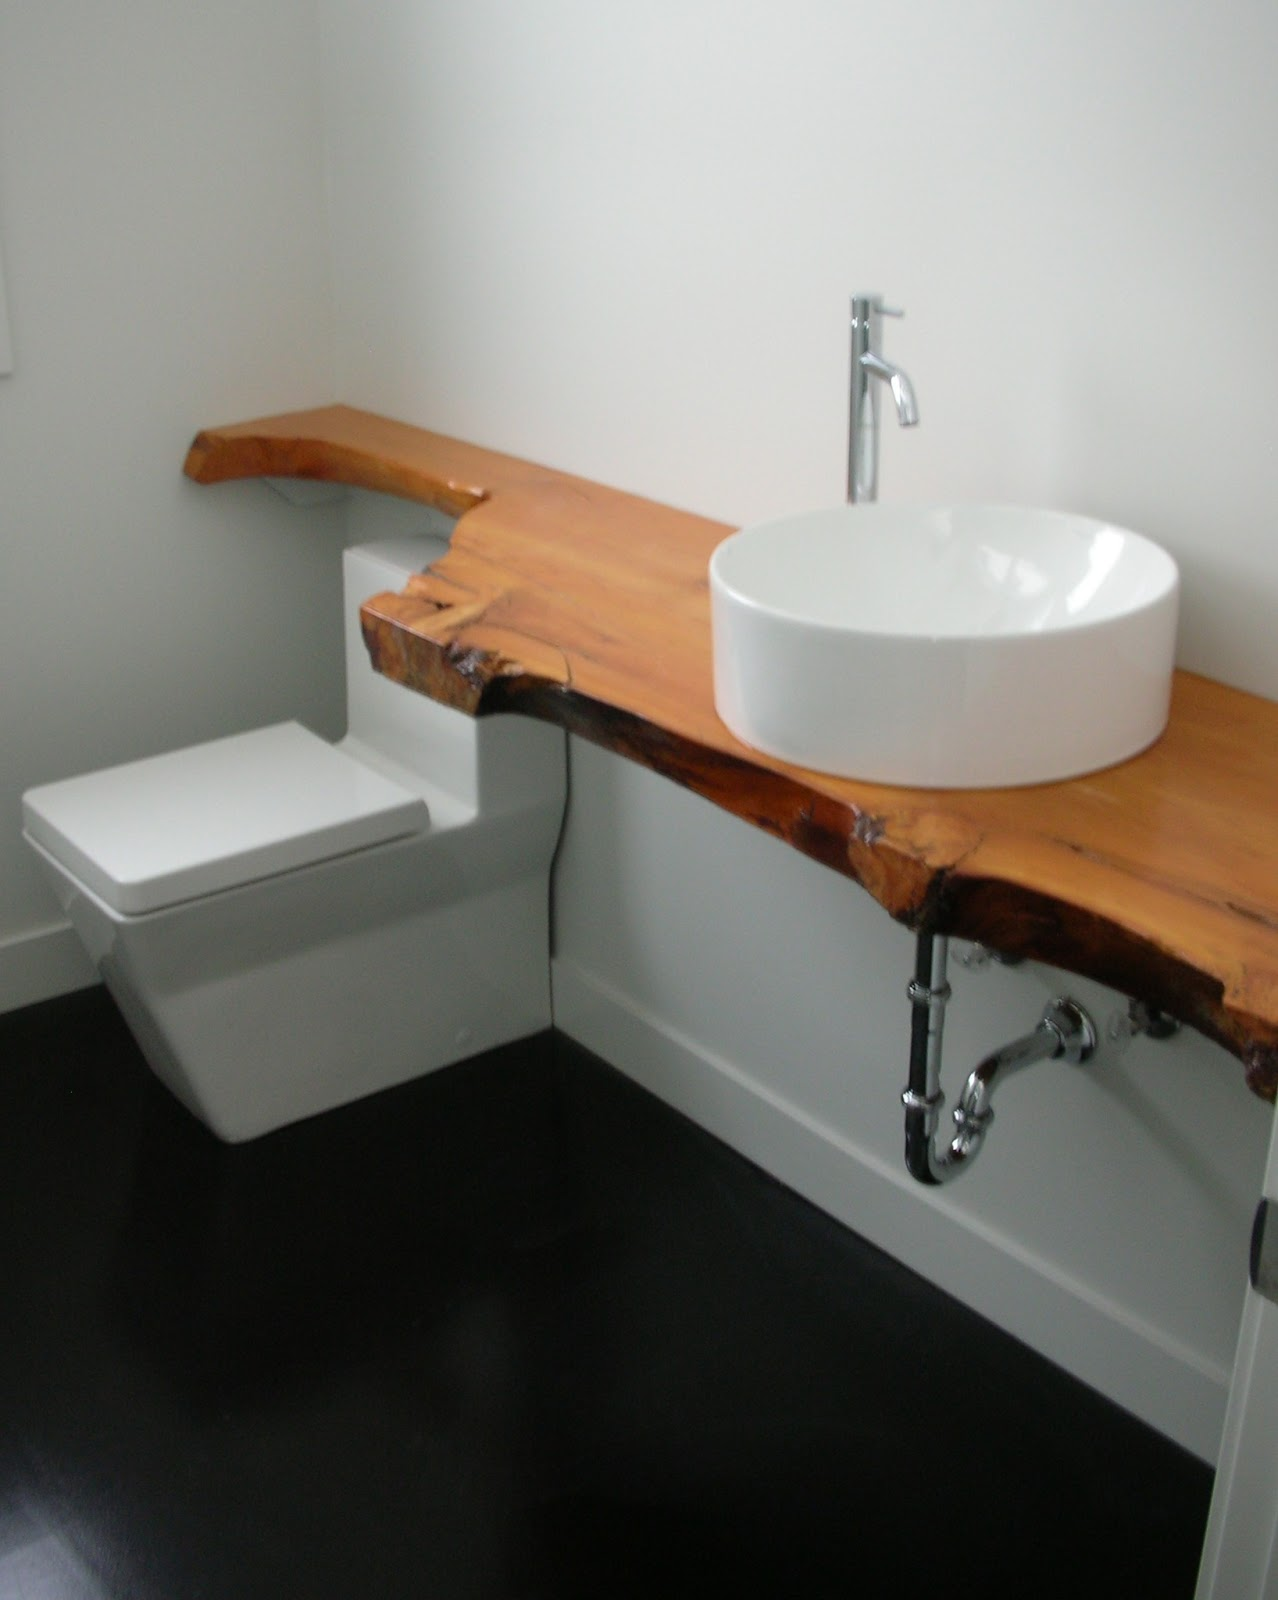 MODE CONCRETE Modern Bathroom with Black Stained Concrete Floor